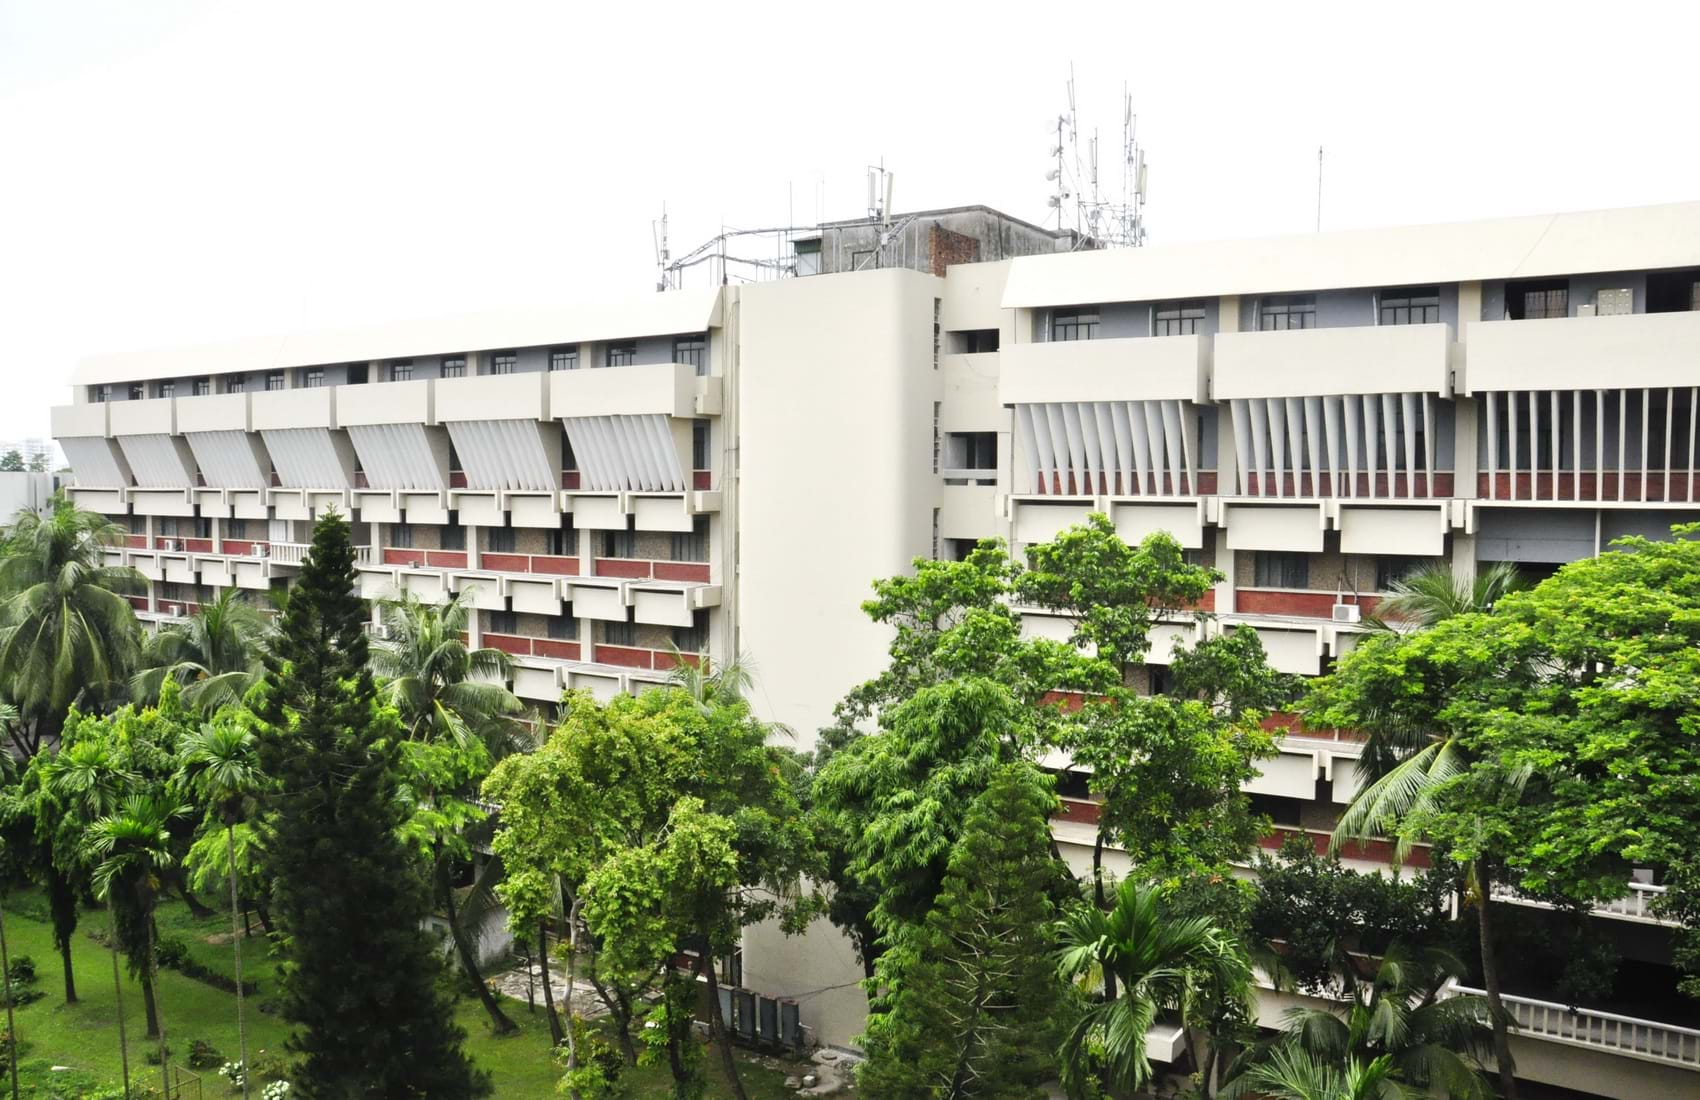 Bangladesh University of Engineering and Technology - BUET